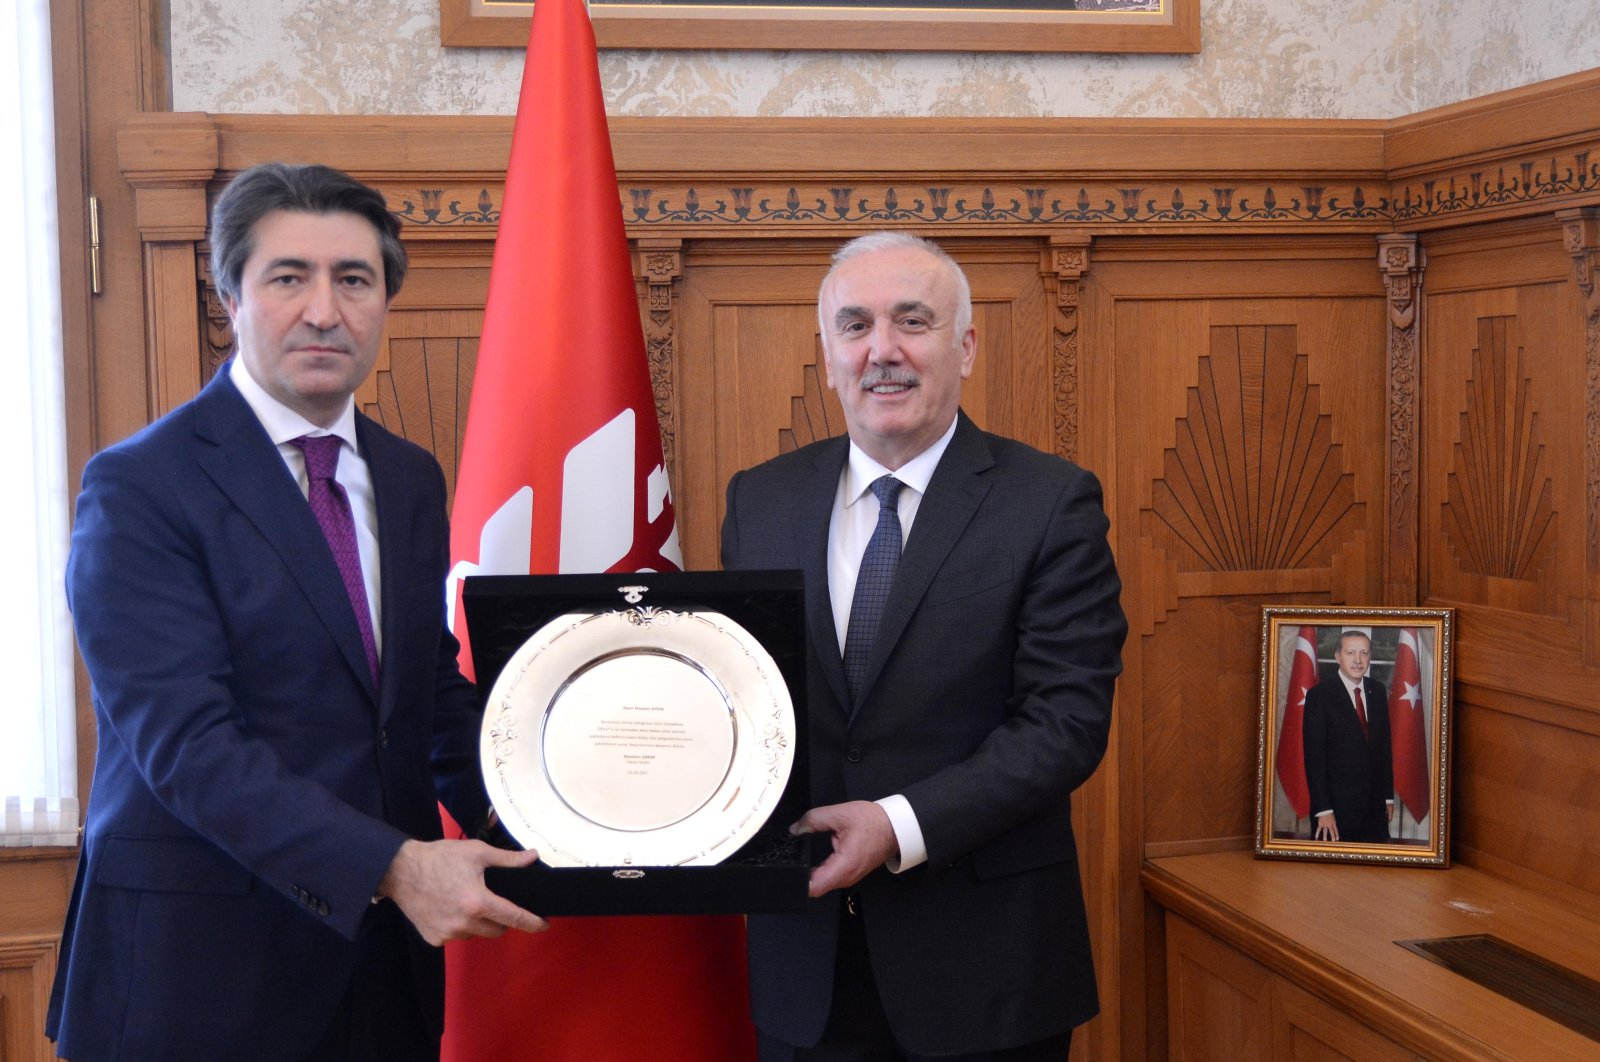 Ziraat Bank's former chief Hüseyin Aydın (R) hands over his duties to the lender's new General Manager Alpaslan Çakar, Ankara, Turkey, March 26, 2021. (Ziraat Bank via AA)